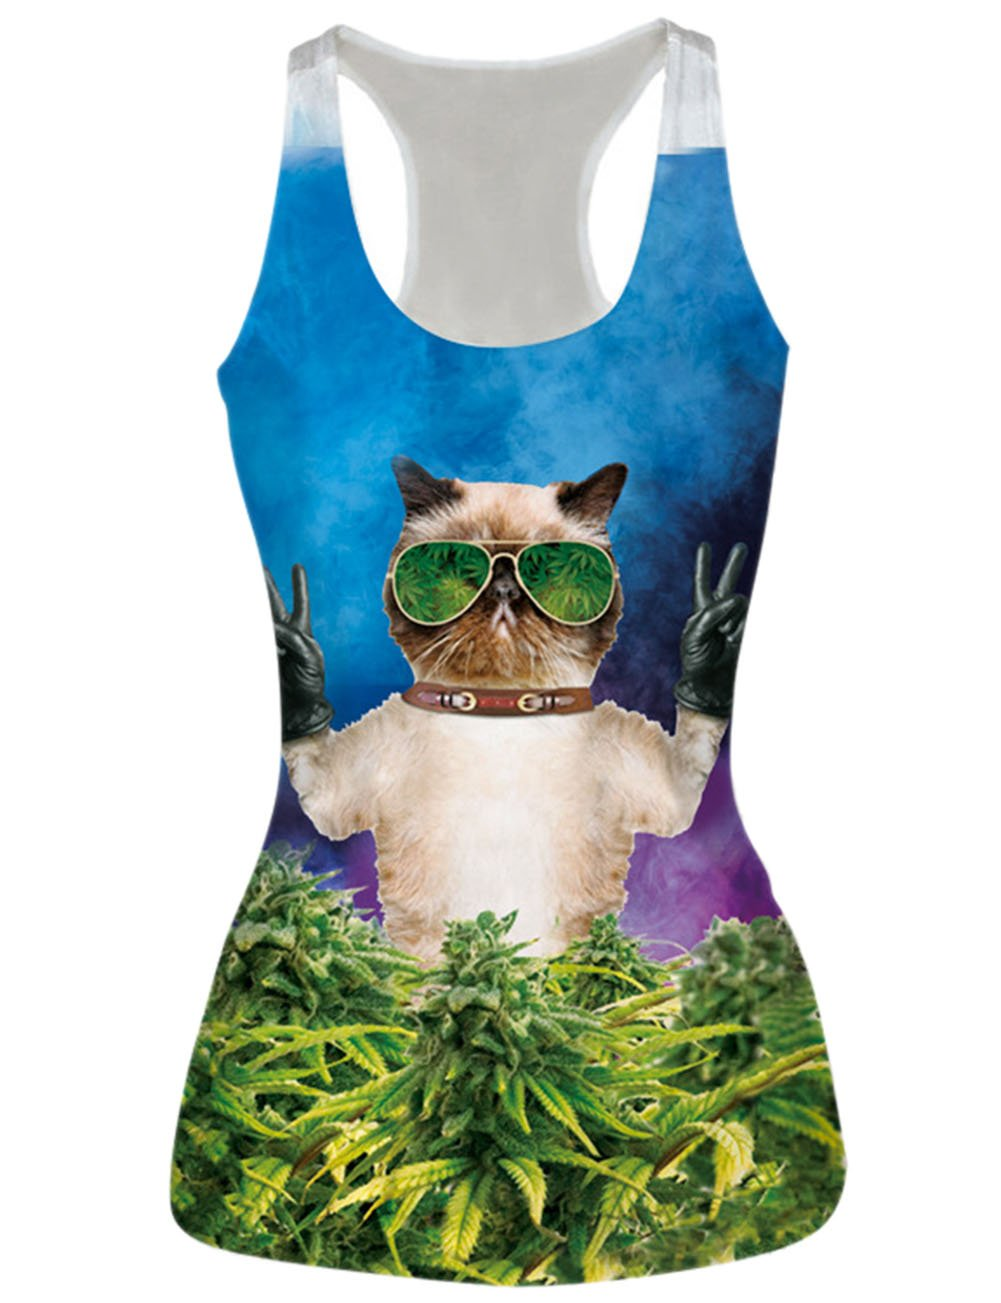 RAISEVERN Cat with Glasses Printed Sleeveless Shirts Vest Tank Tops,Cat2,One Size